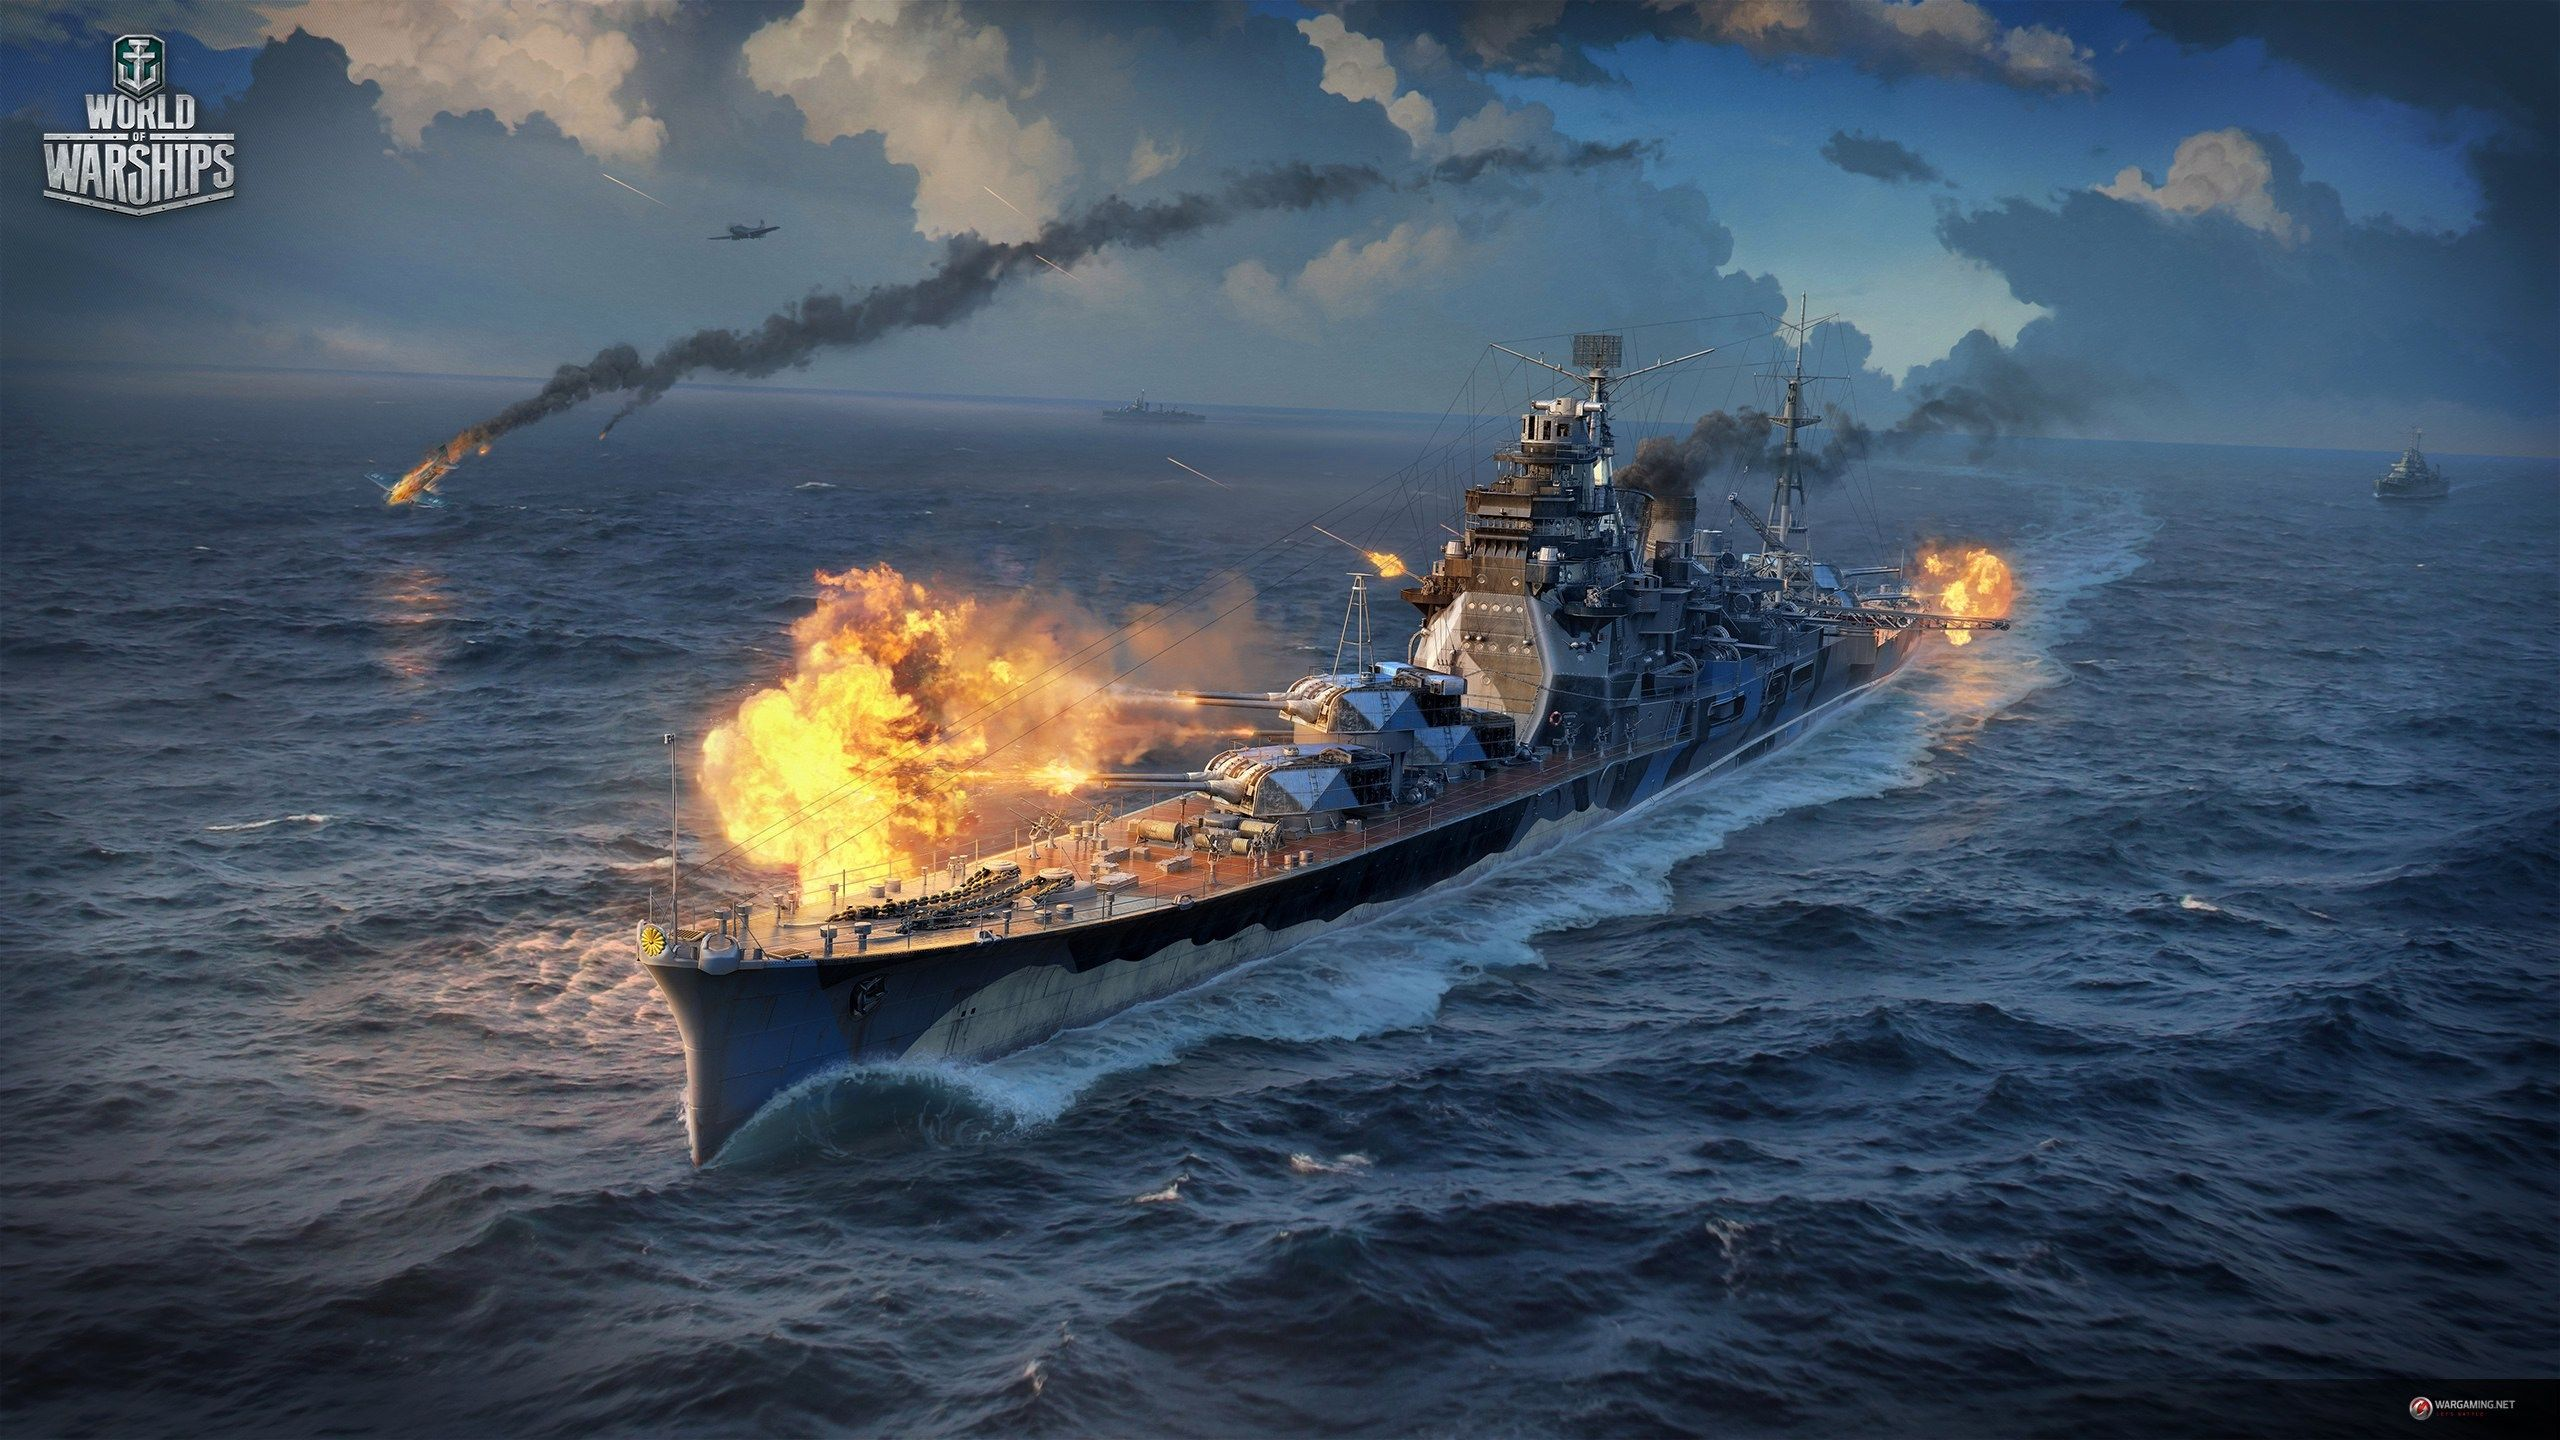 Widescreen Wallpaper World Of Warships 2560x1440 648 Kb World Of Warships Wallpaper Warship Warship Games